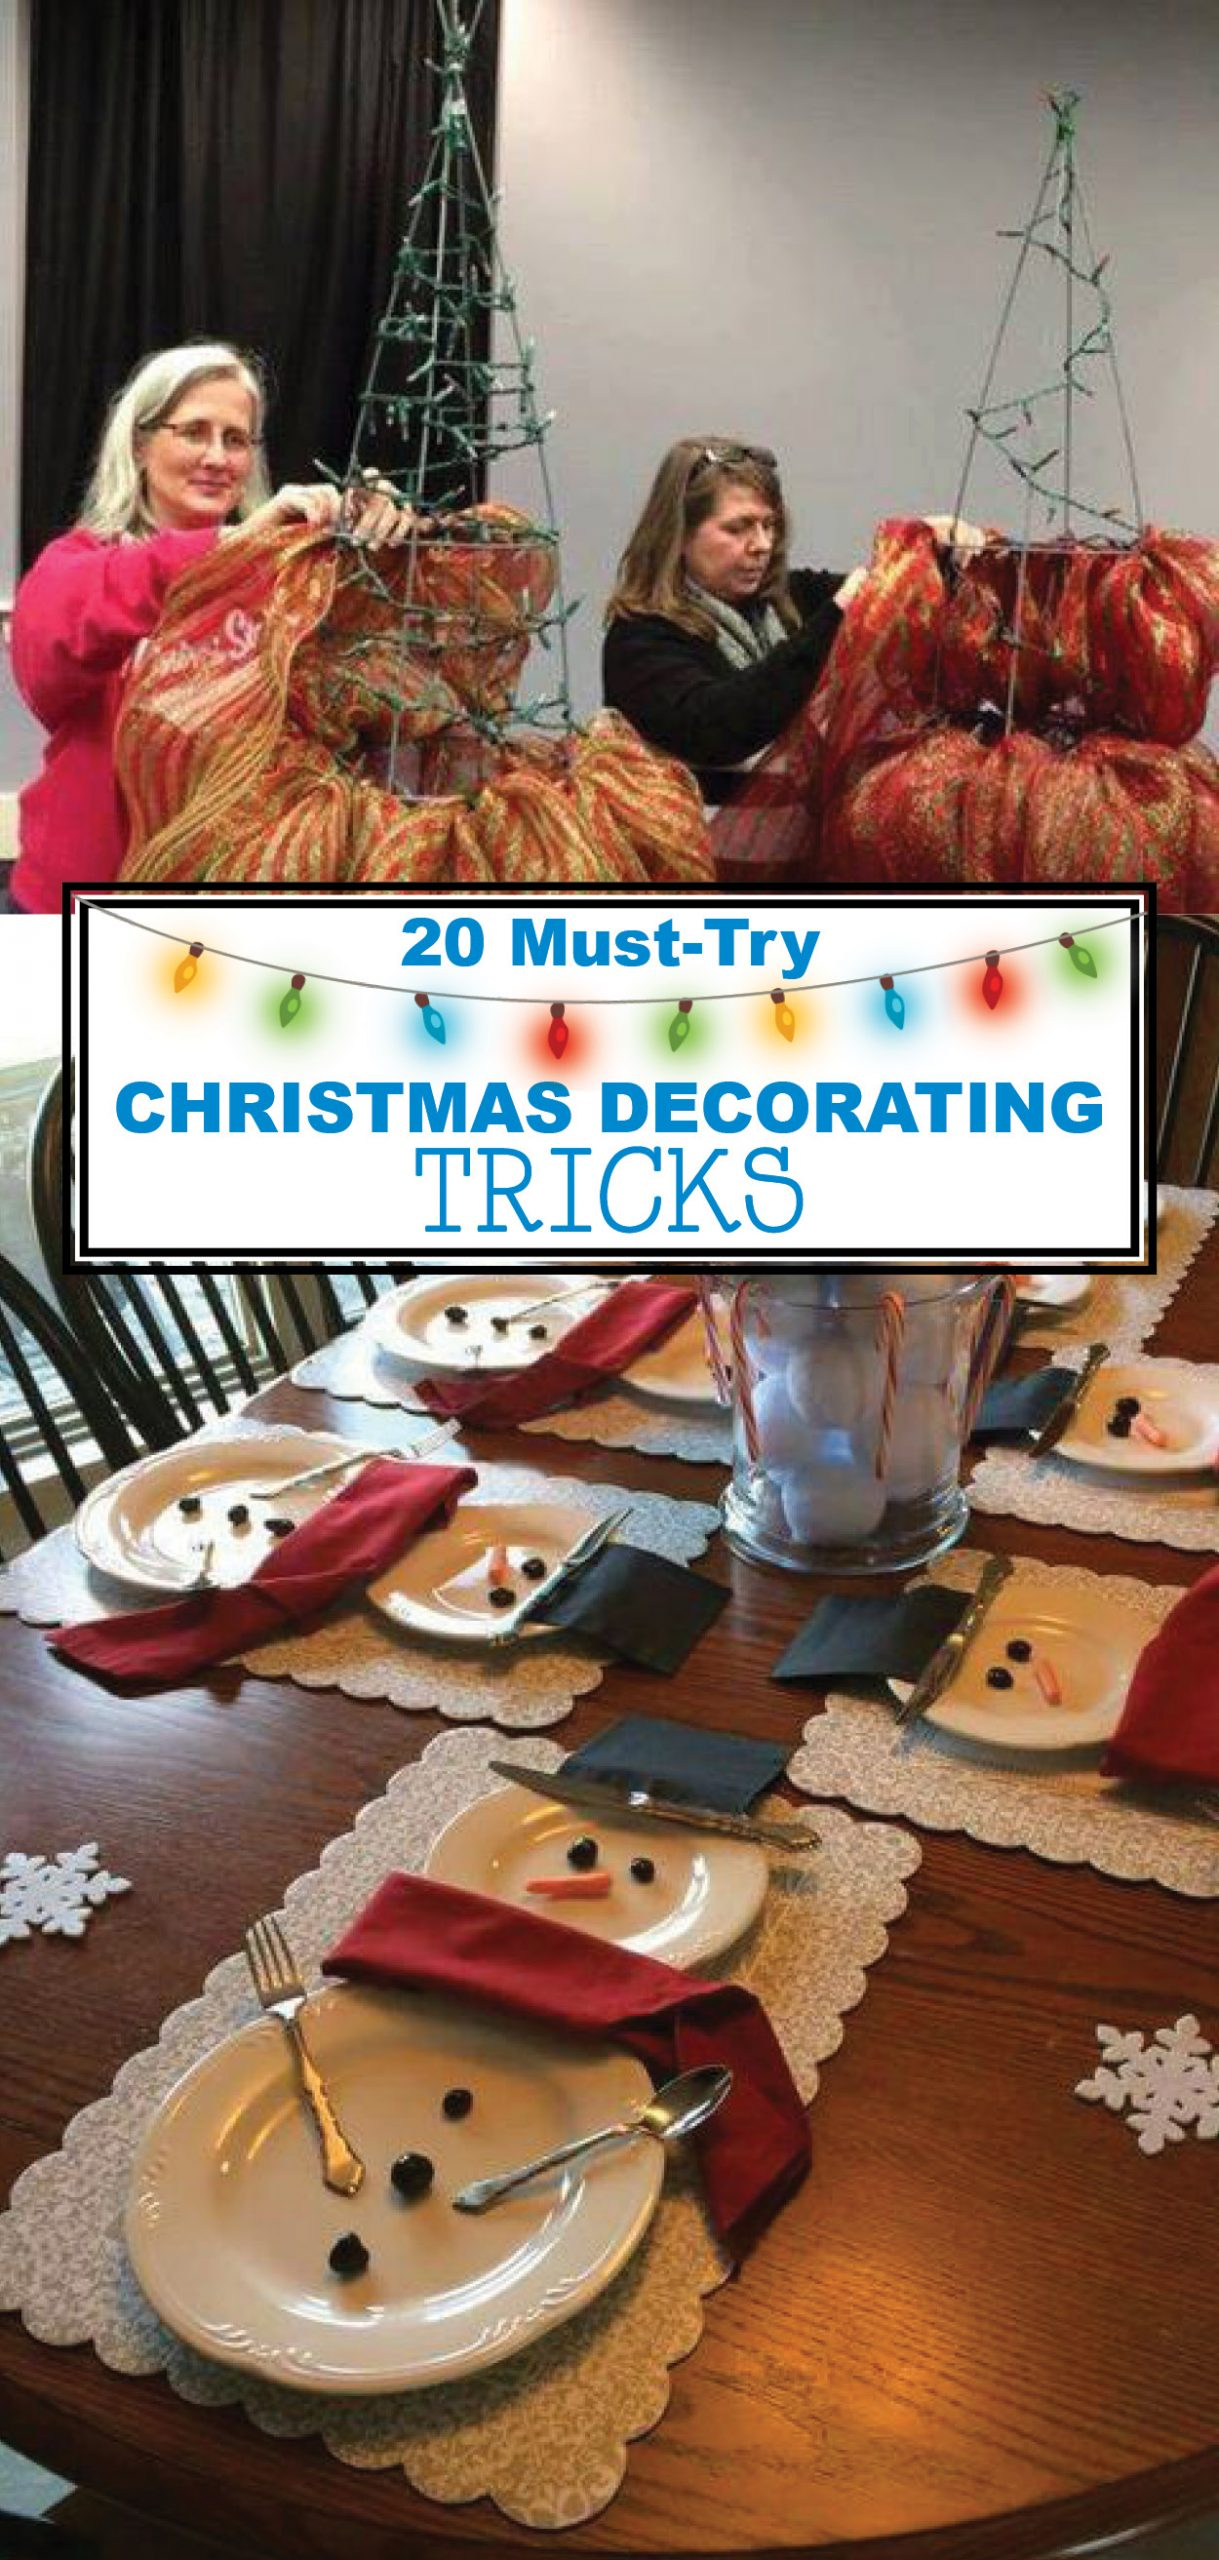 Christmas Decorating Hacks that save time and money. Easy DIY and craft ideas with pictures and supplies included! #DIYChristmas #HandmadeChristmas #HomemadeChristmasIdea #HomemadeChristmasDecor #DIYChristmasGift